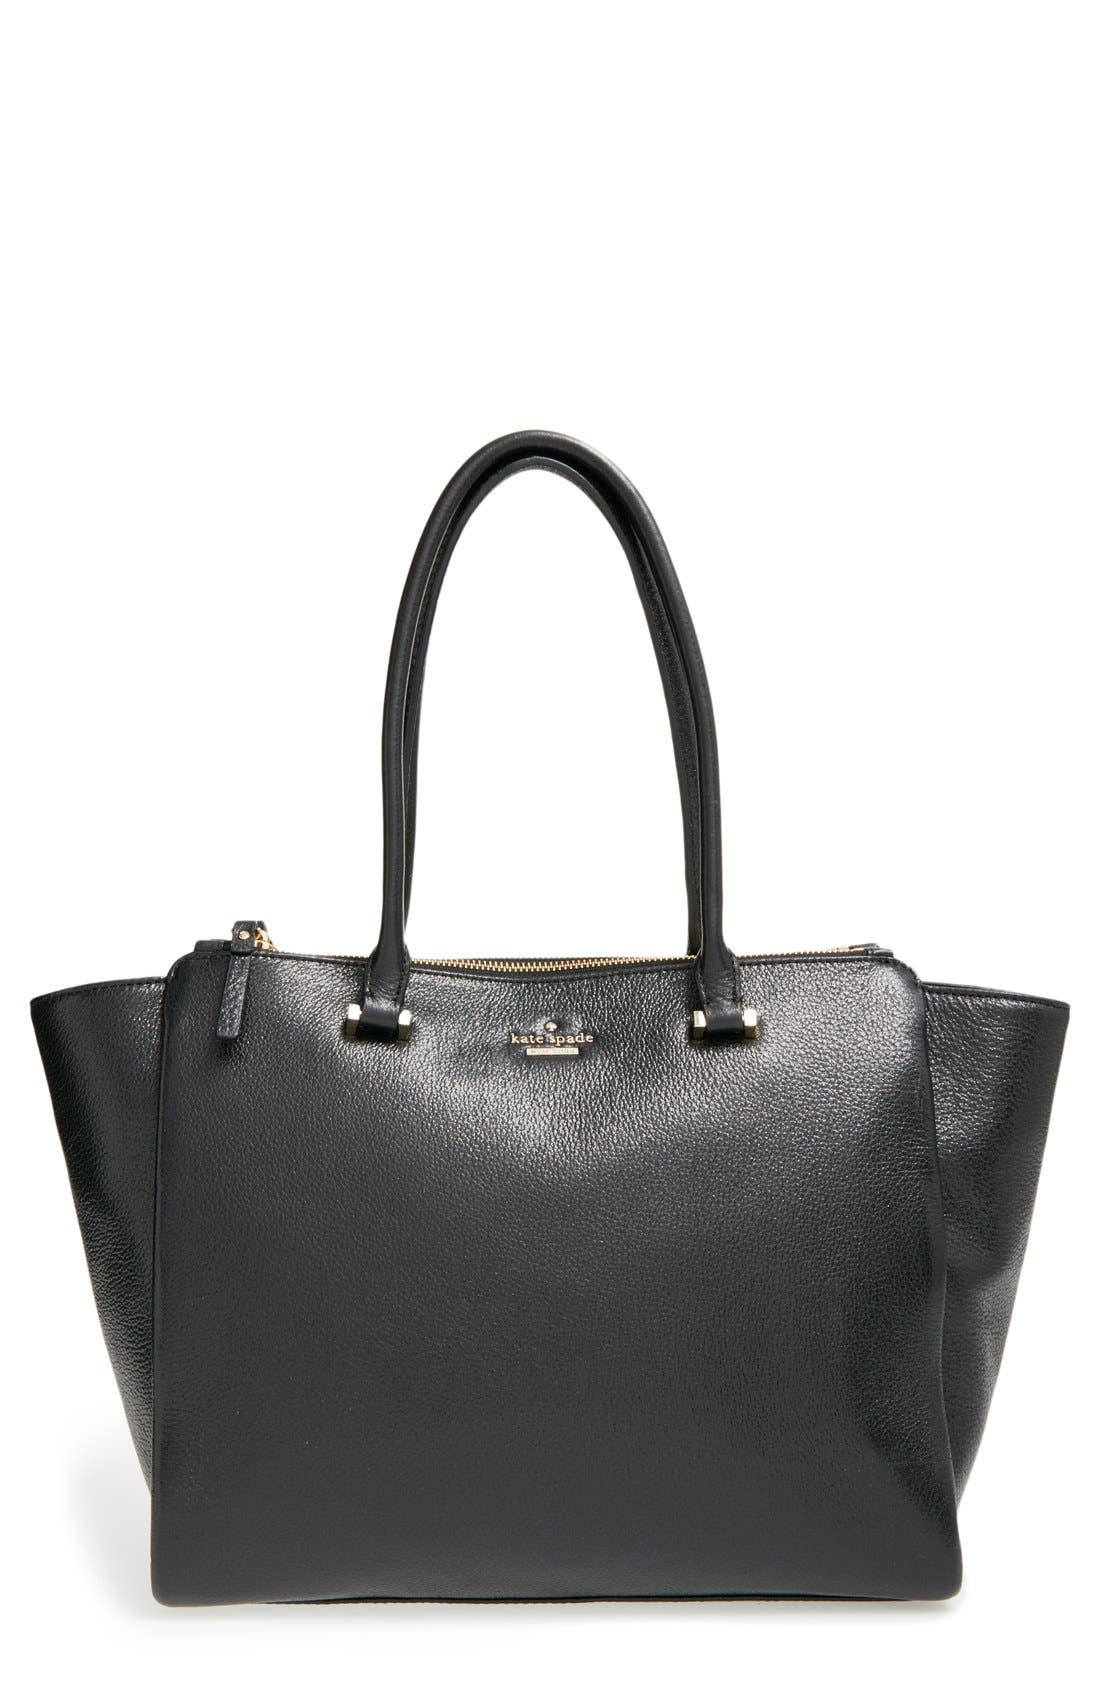 'emerson place - smooth holland' leather tote,                             Main thumbnail 1, color,                             001